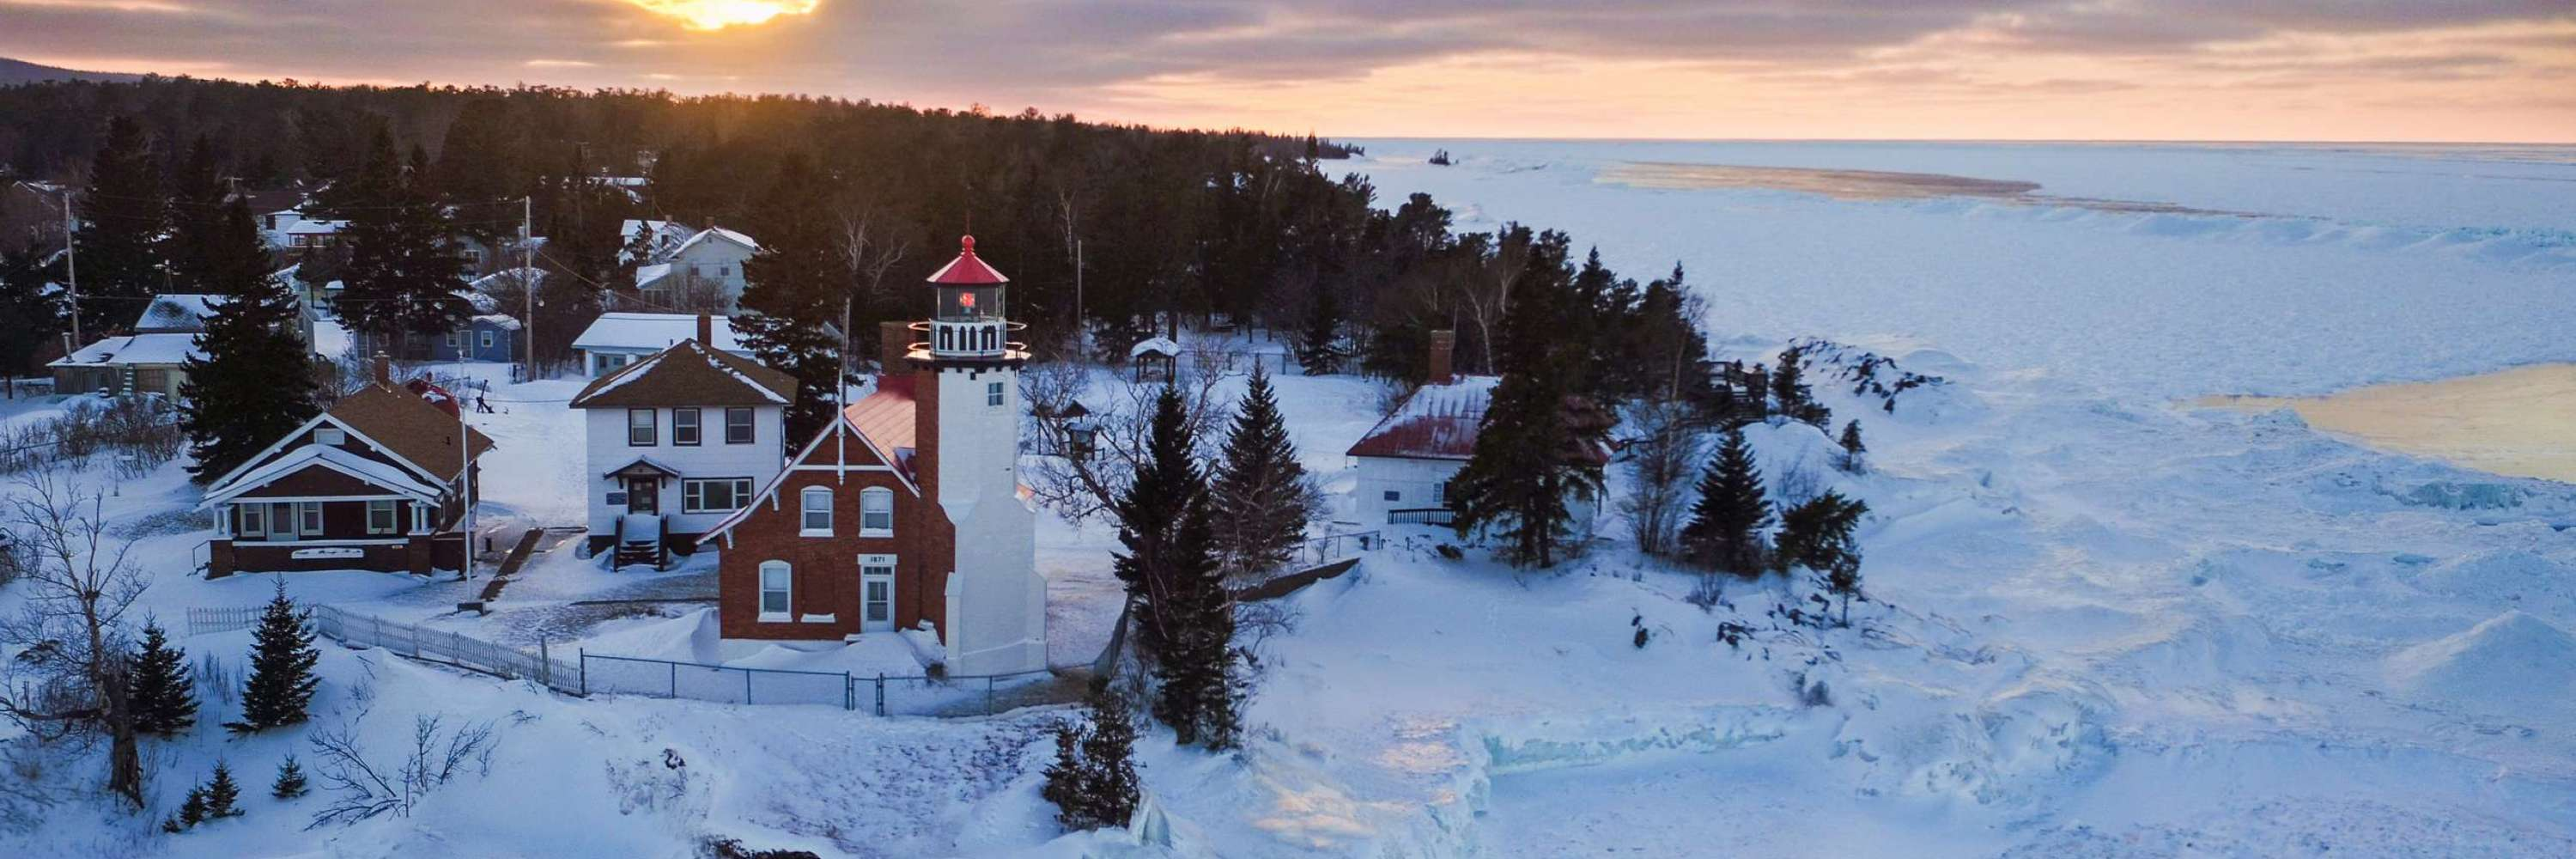 Eagle Harbor Lighthouse during winter